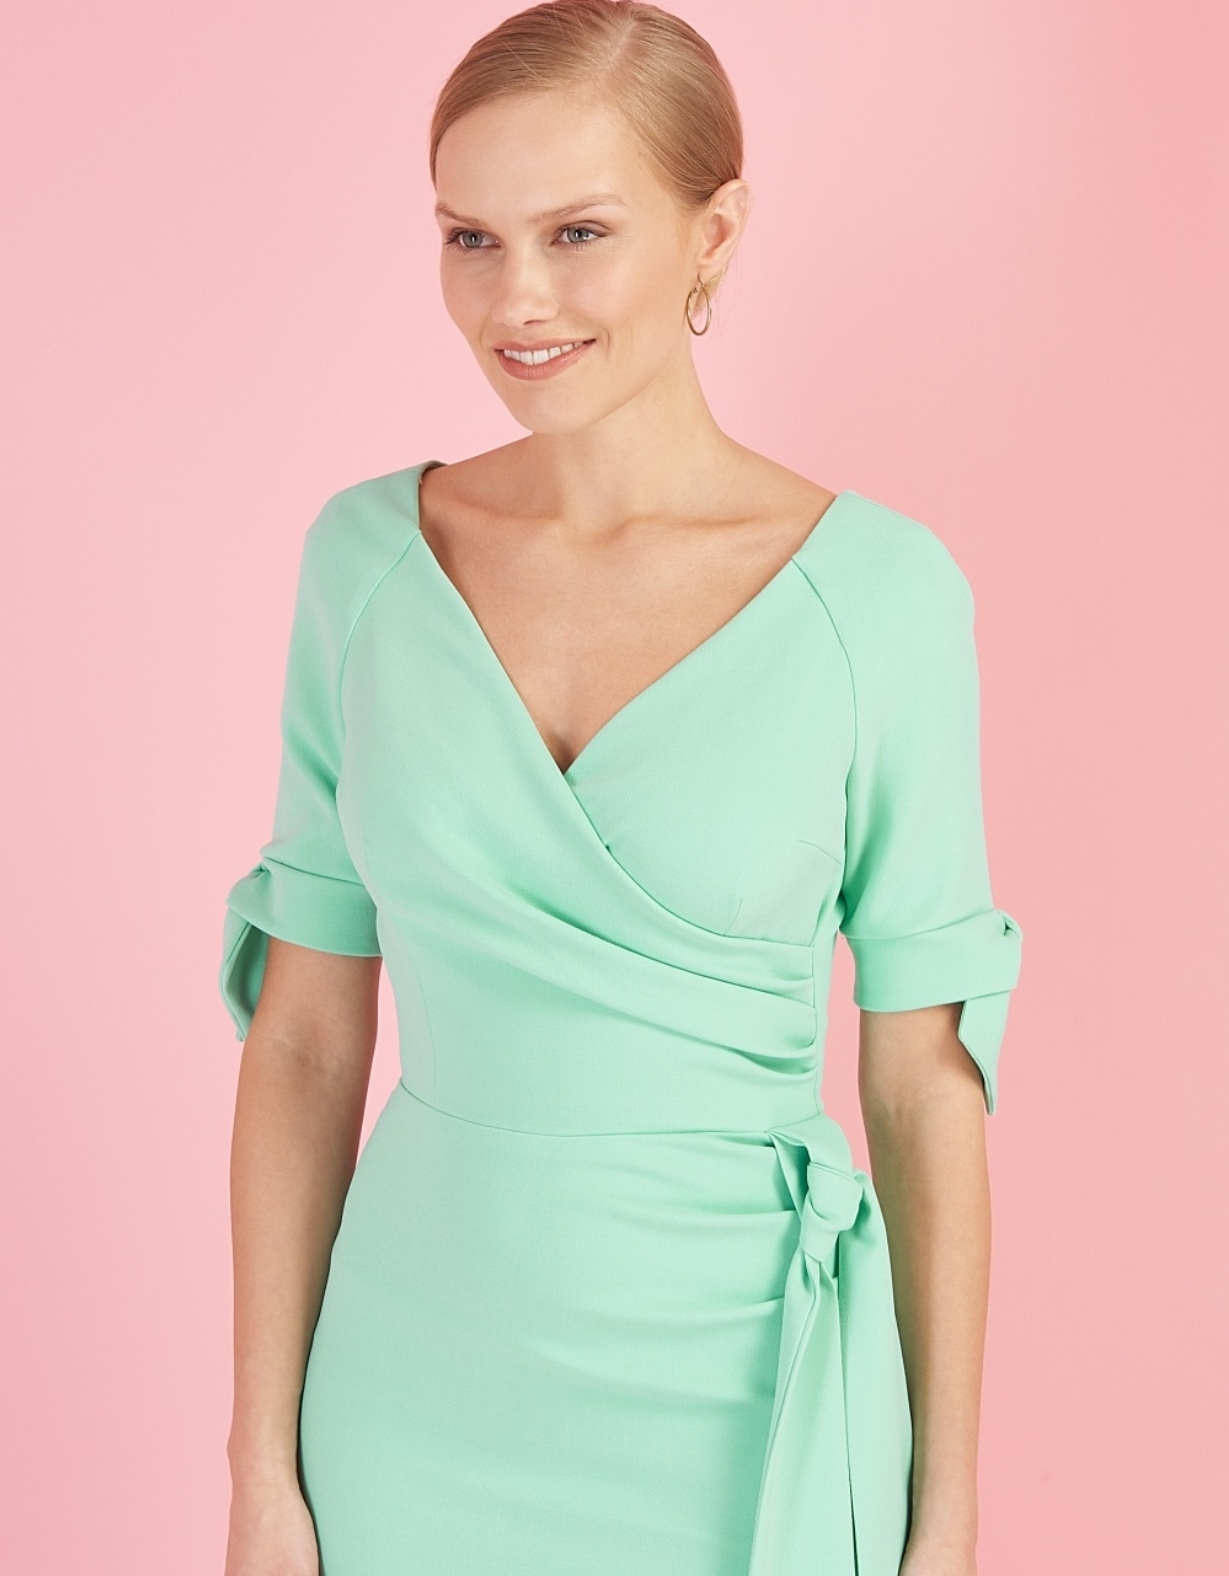 Hourglass Dress with Bows on Sleeves in Delicate Mint